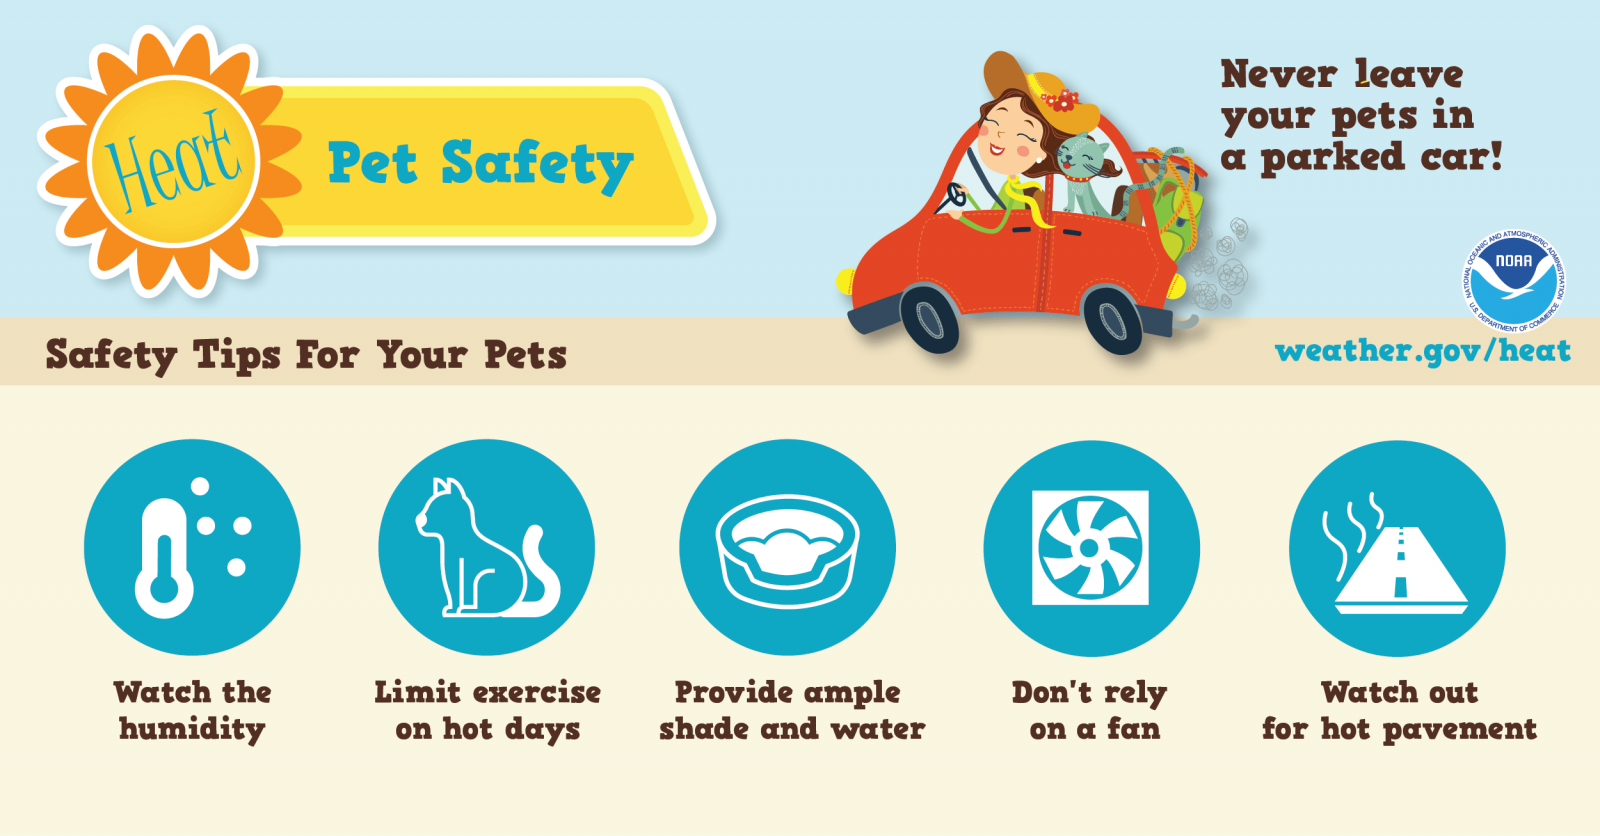 Keep Your Pets Cool During the Dog Days of Summer